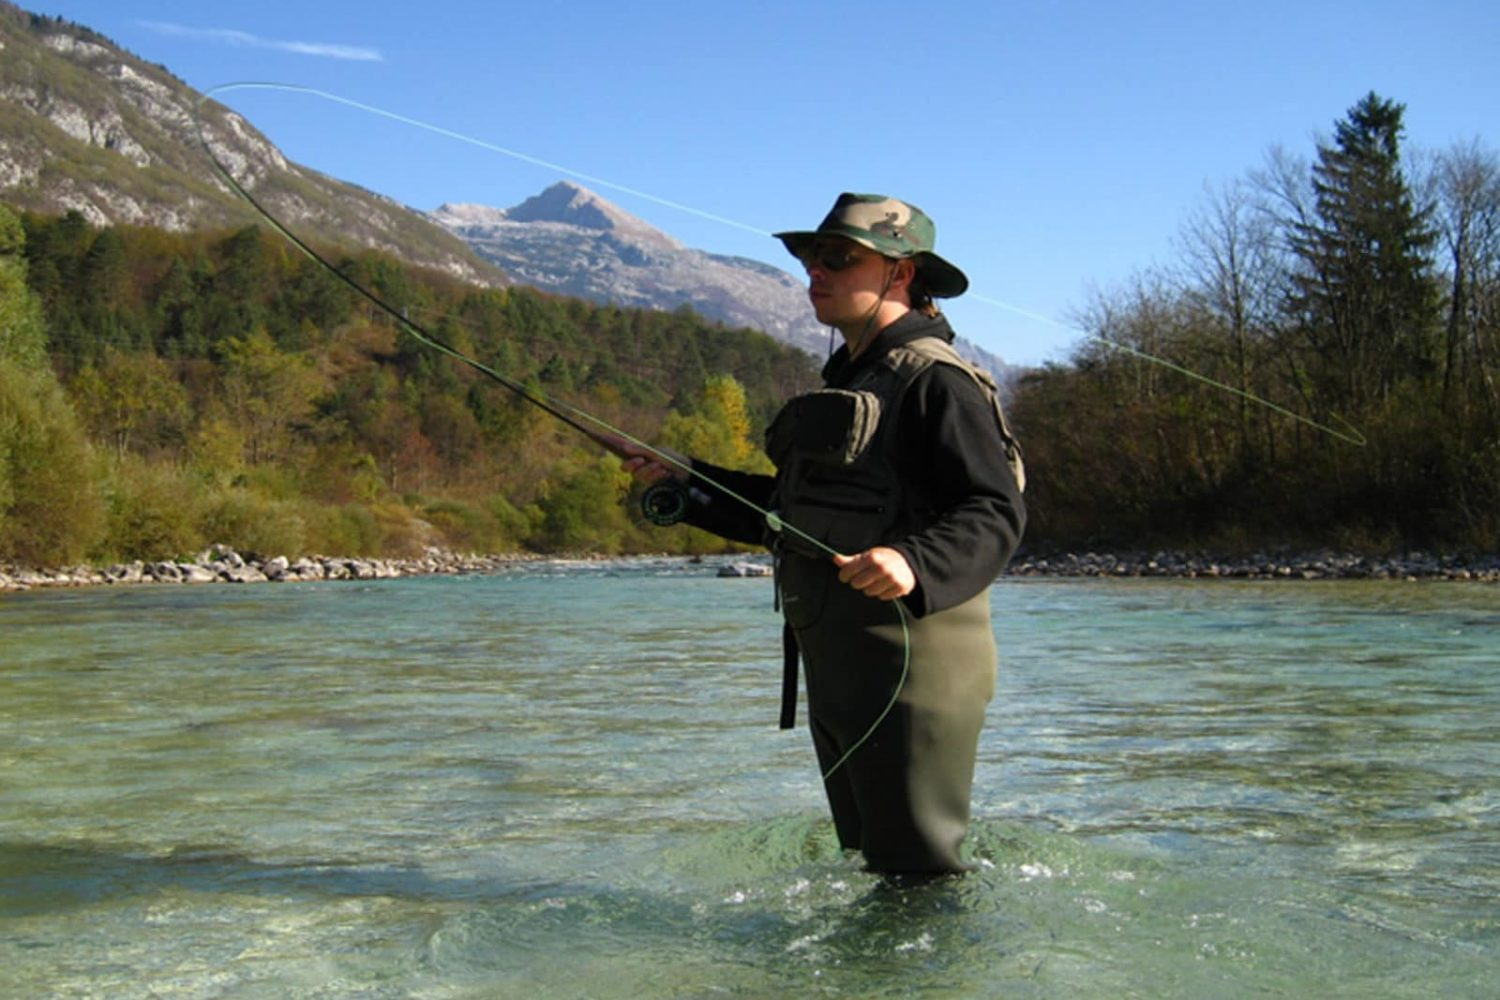 Fly fishing in rivers